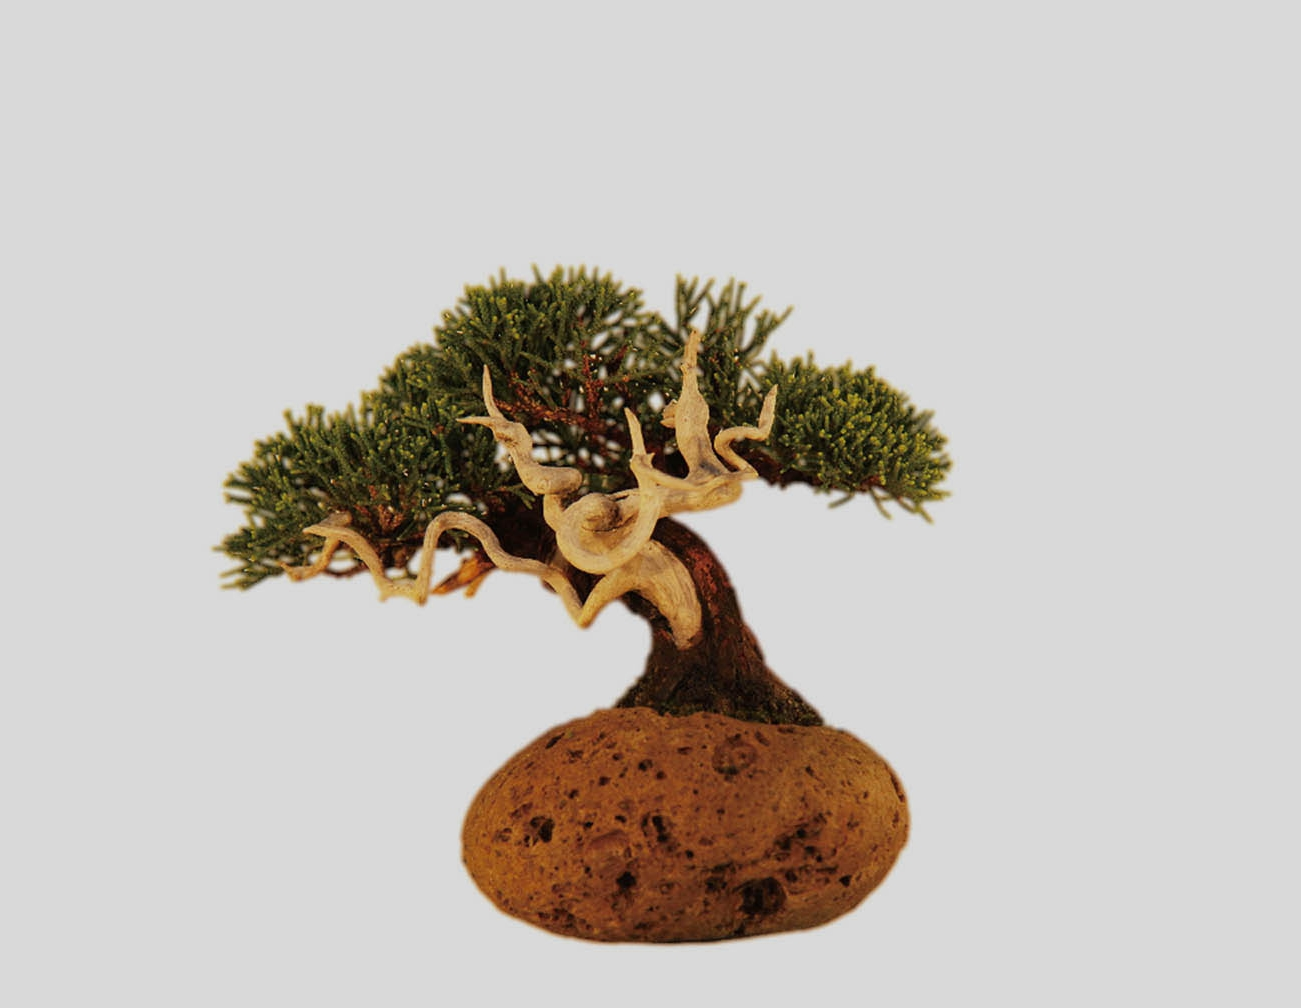 bonsai_hero4_1453743755